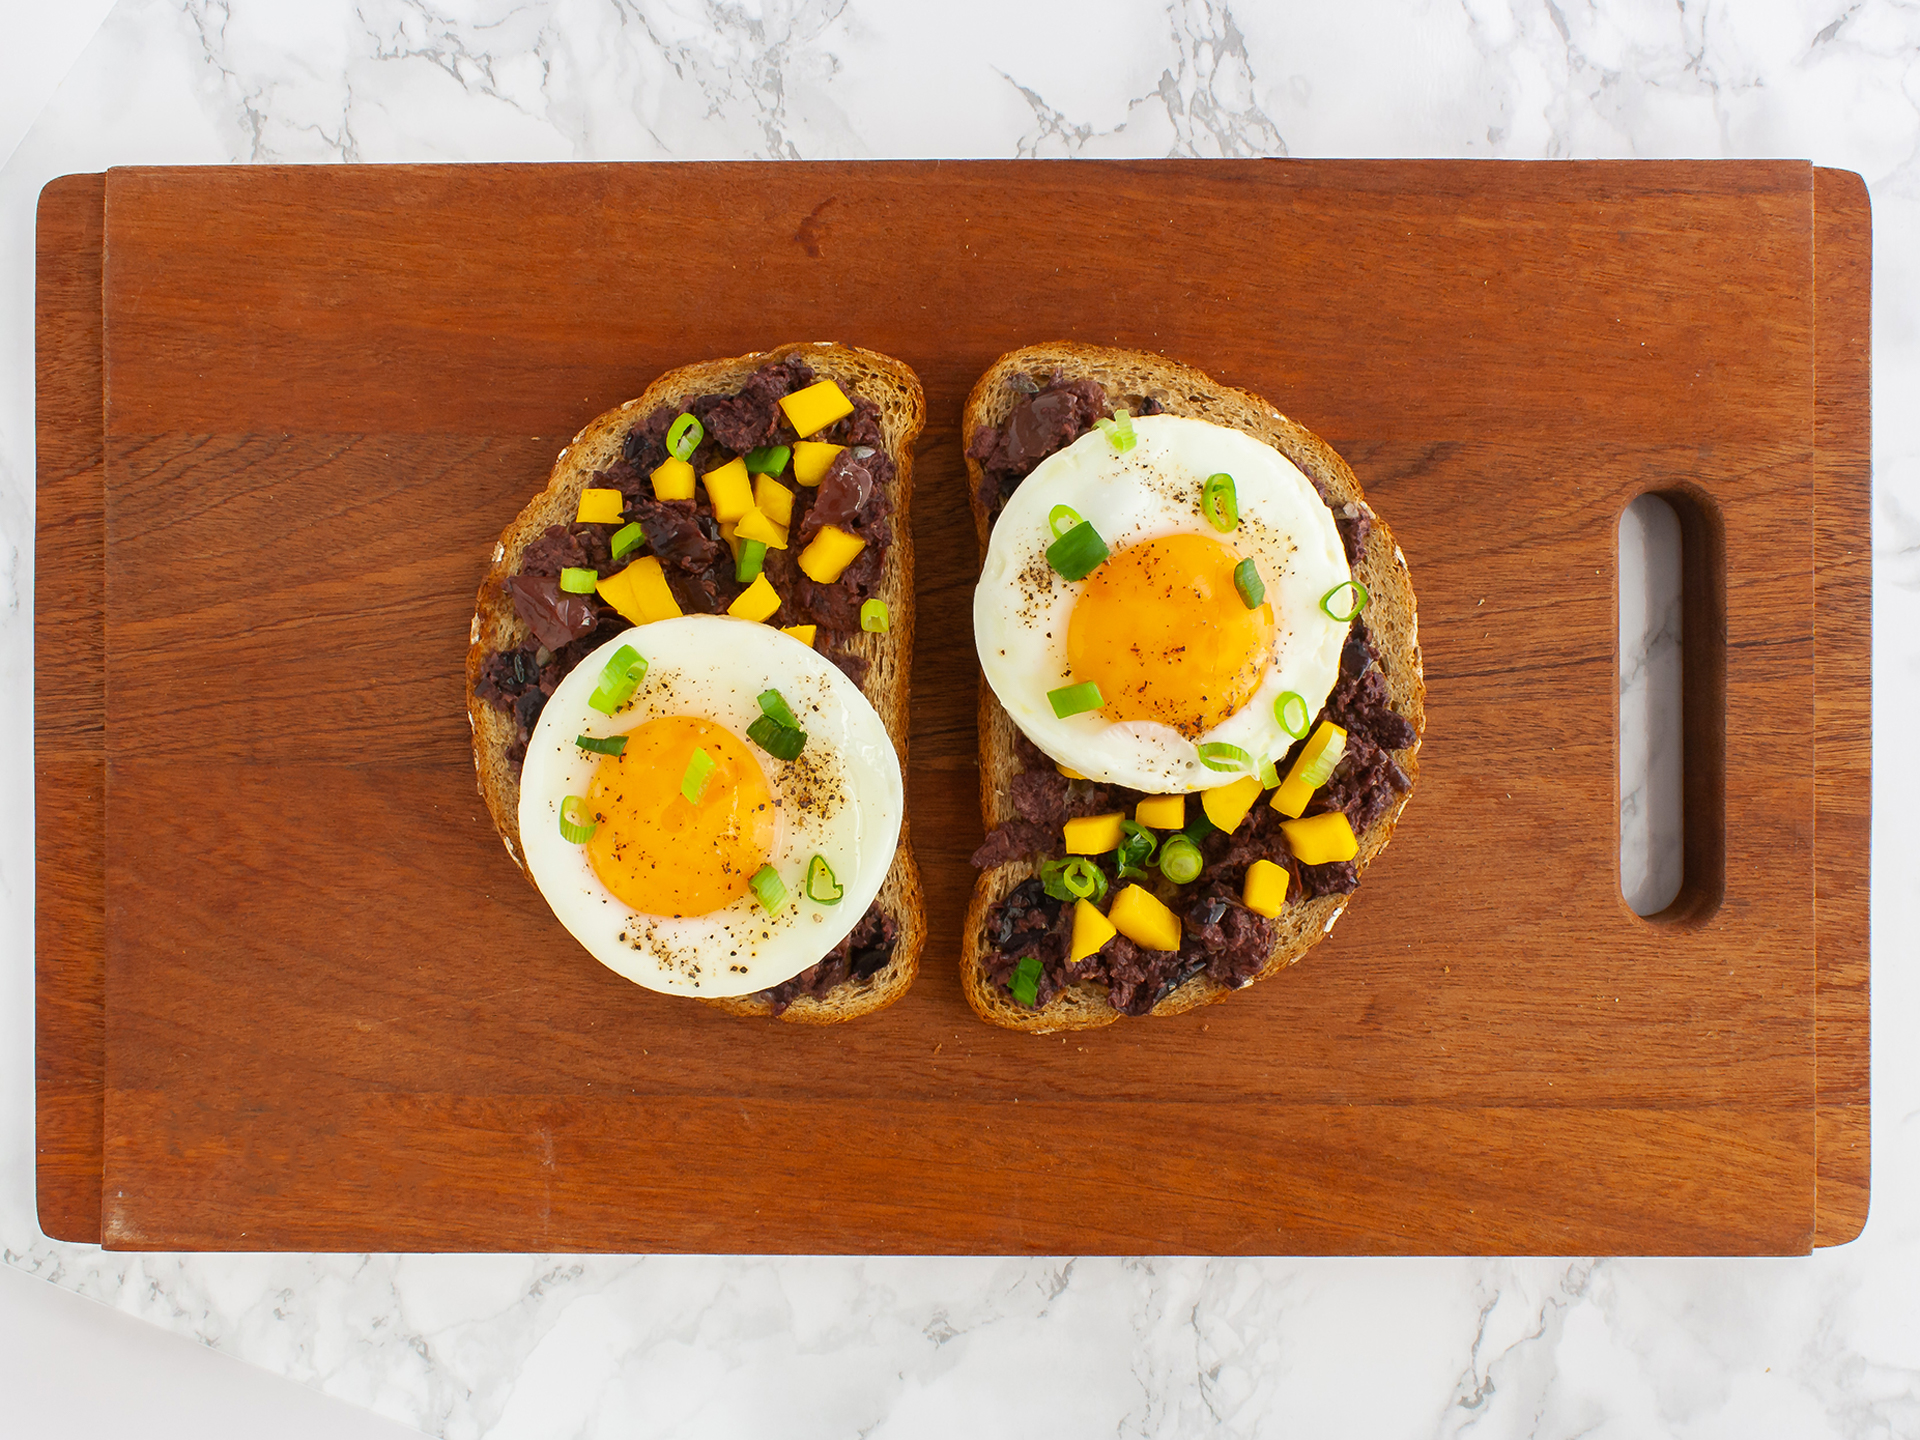 Step 3.2 of Olive Tapenade Bruschetta With Mango and Eggs